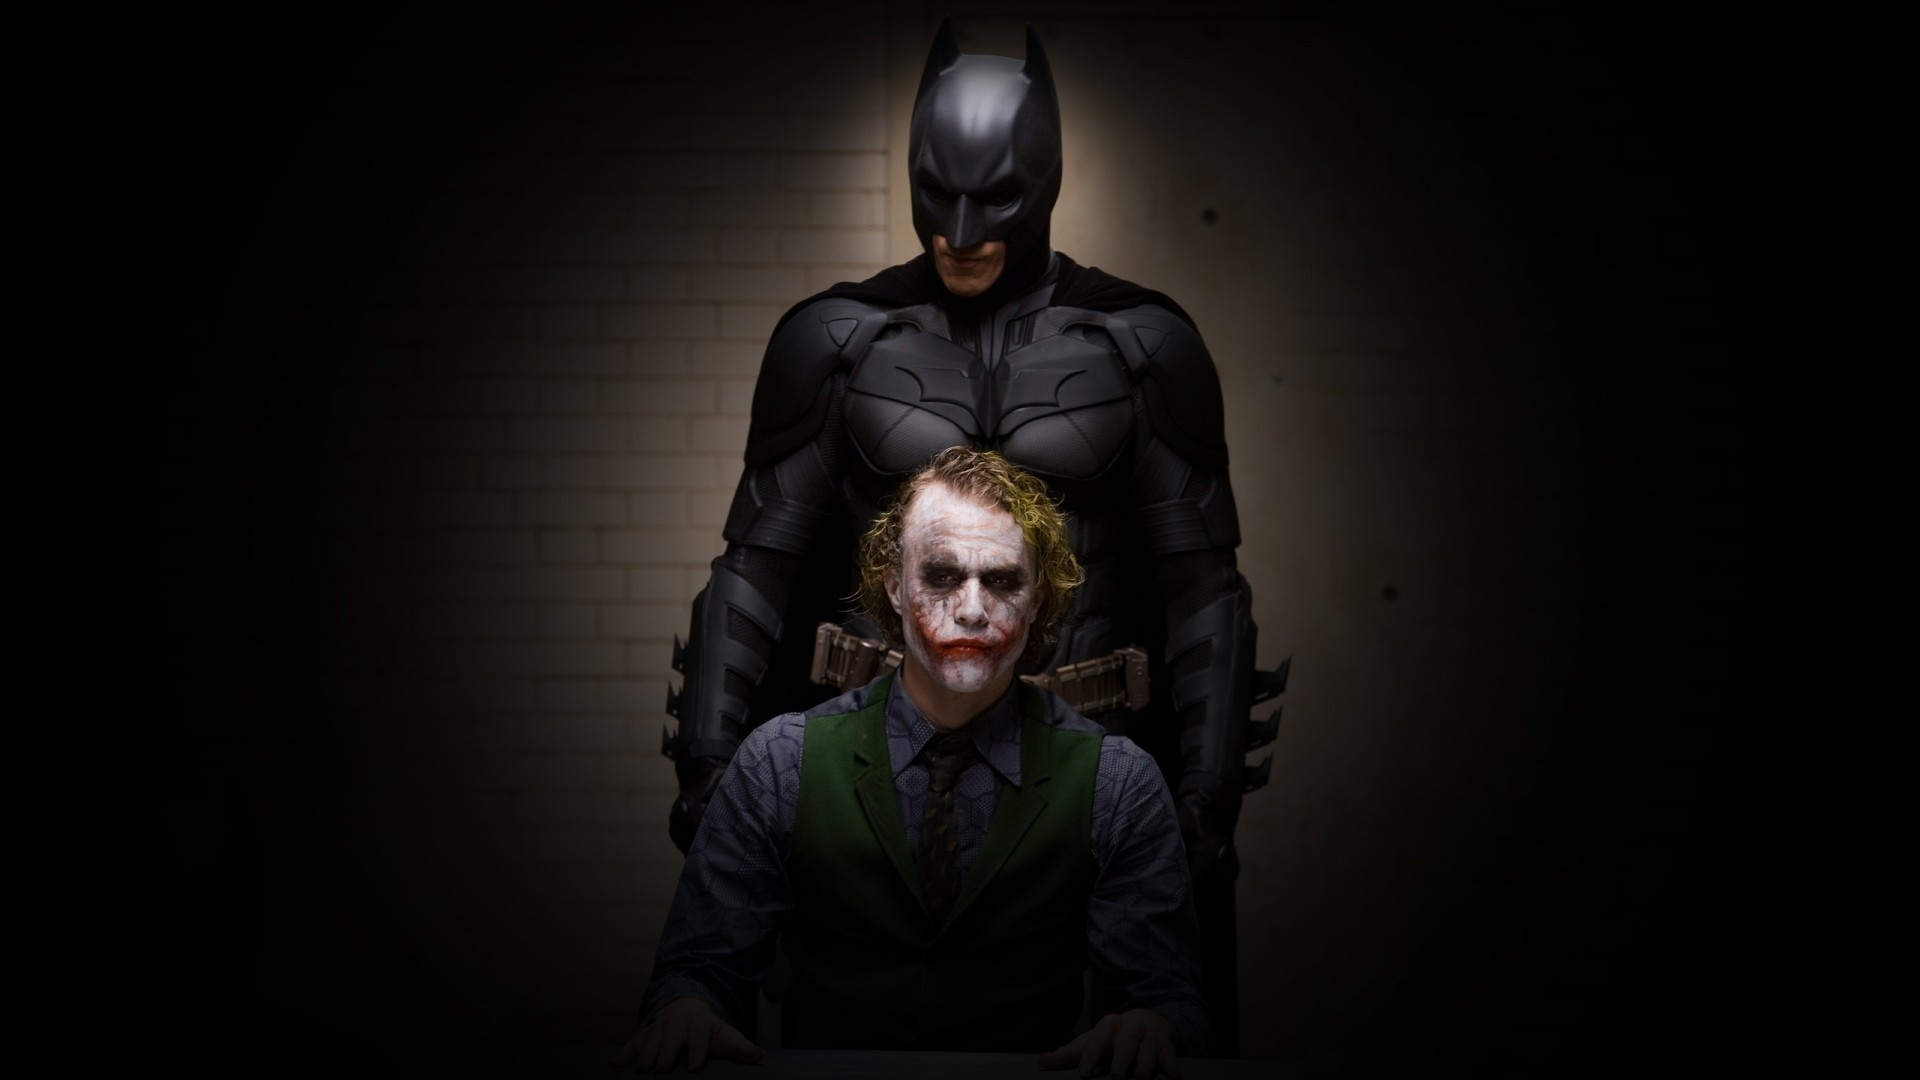 Batman-and-Joker-Wallpaper